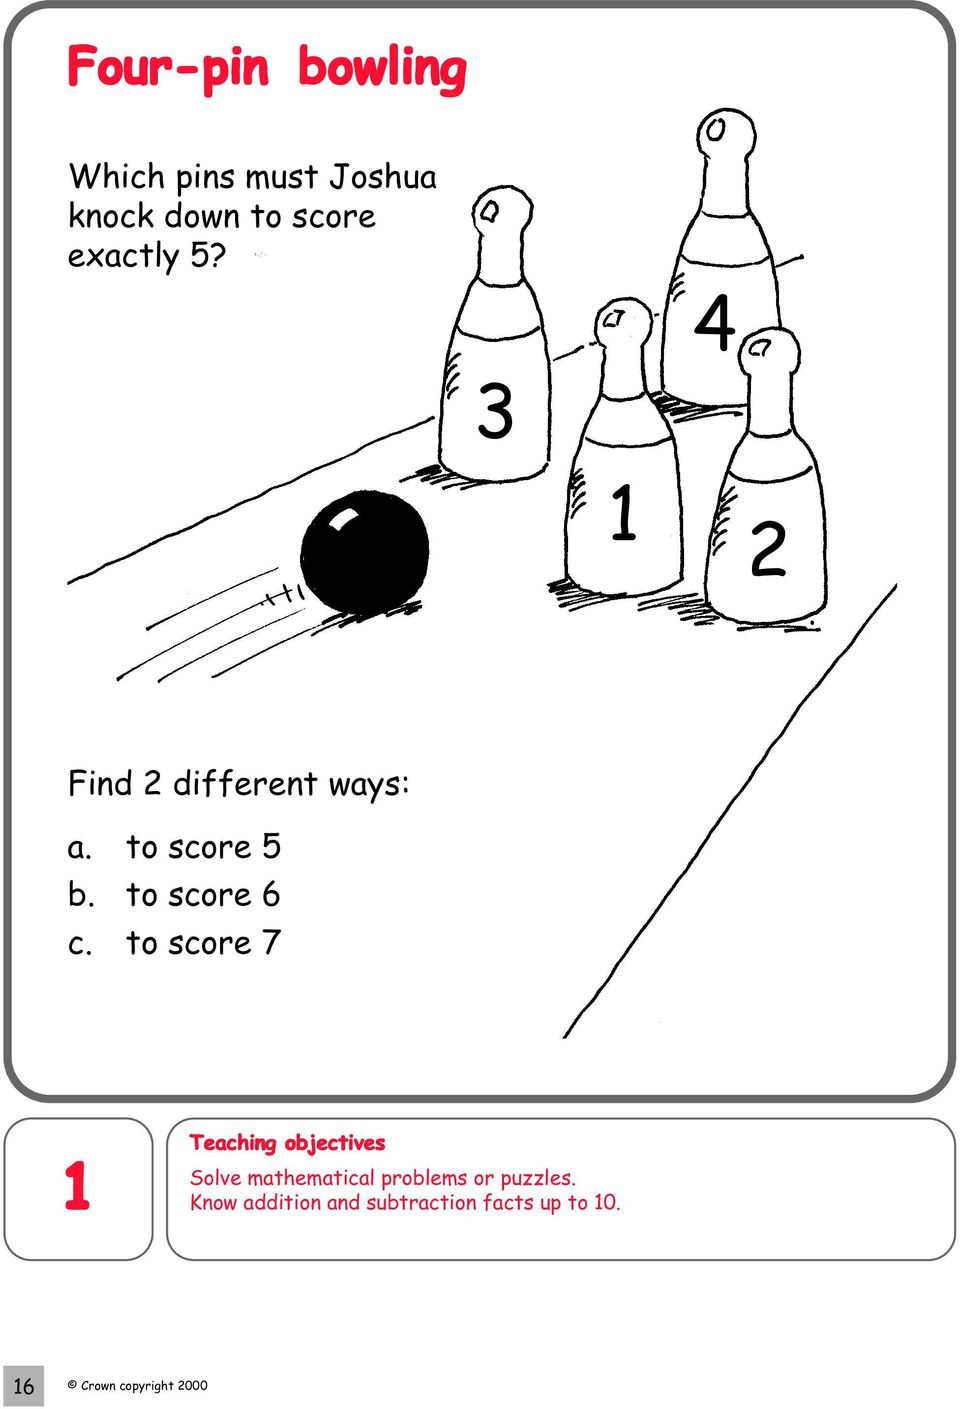 3 4 1 2 Find 2 different ways: a. to score 5 b.